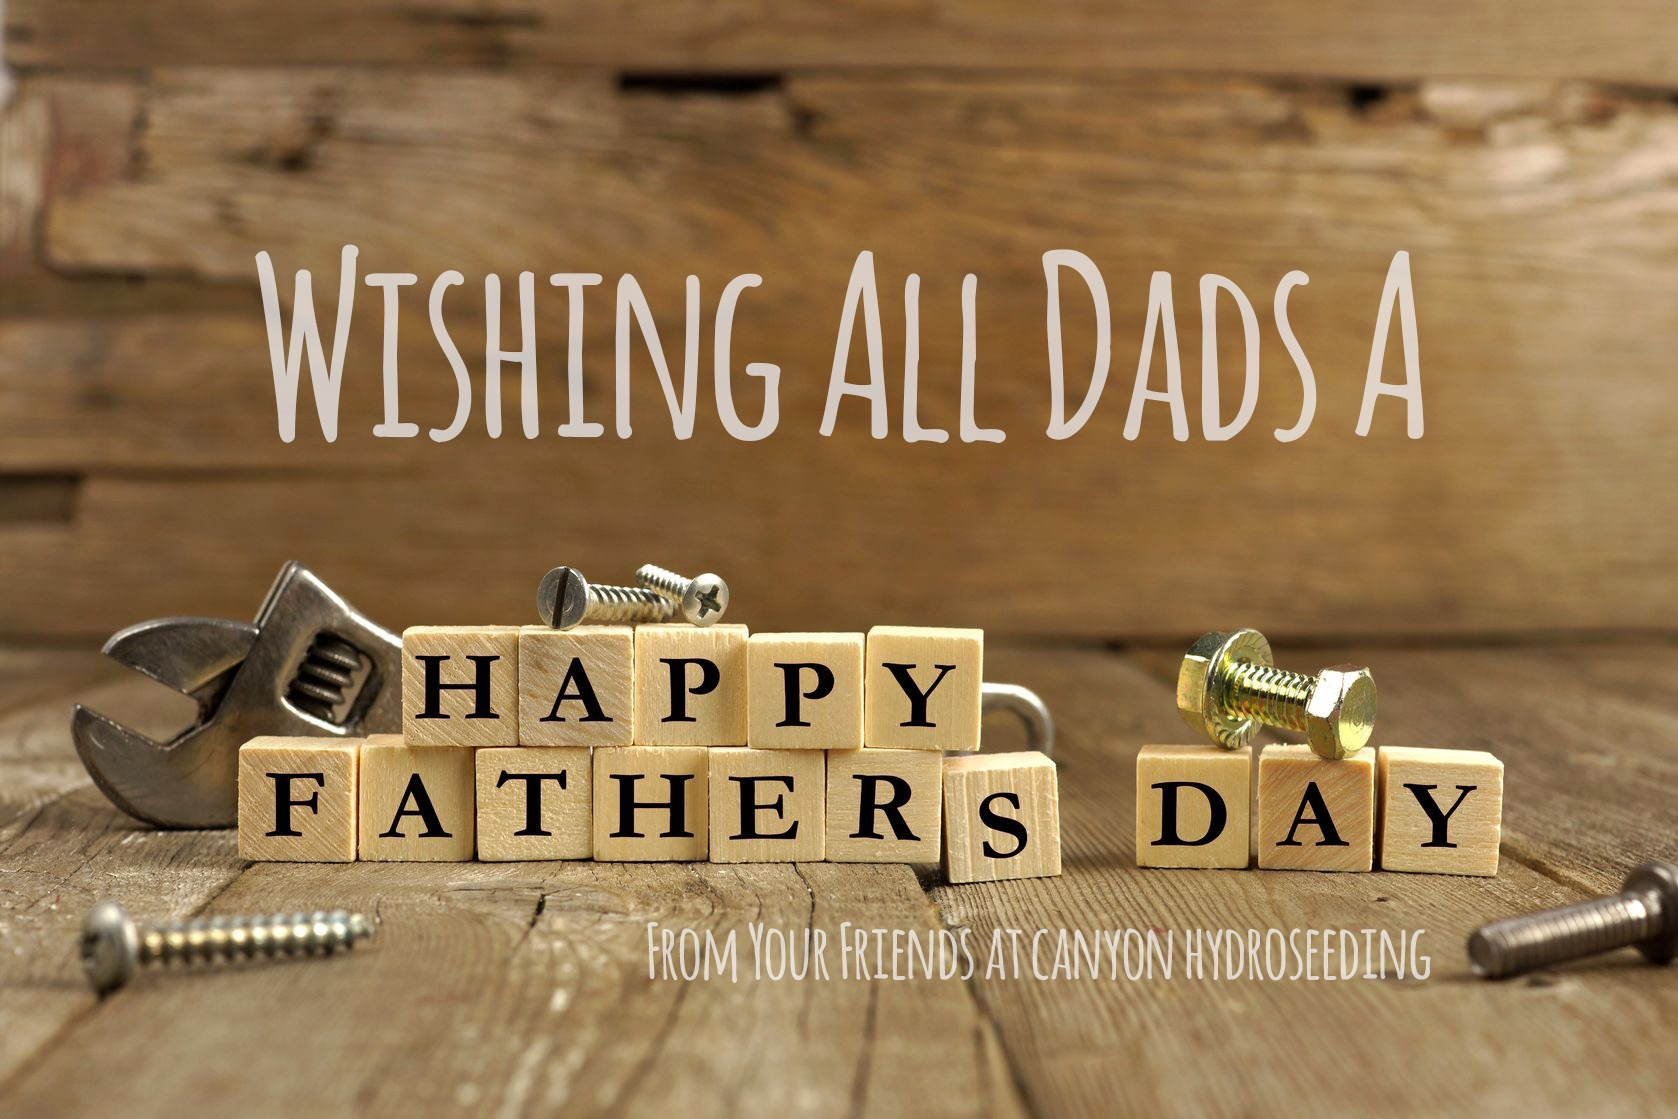 FATHERS DAY 2016 IMAGE